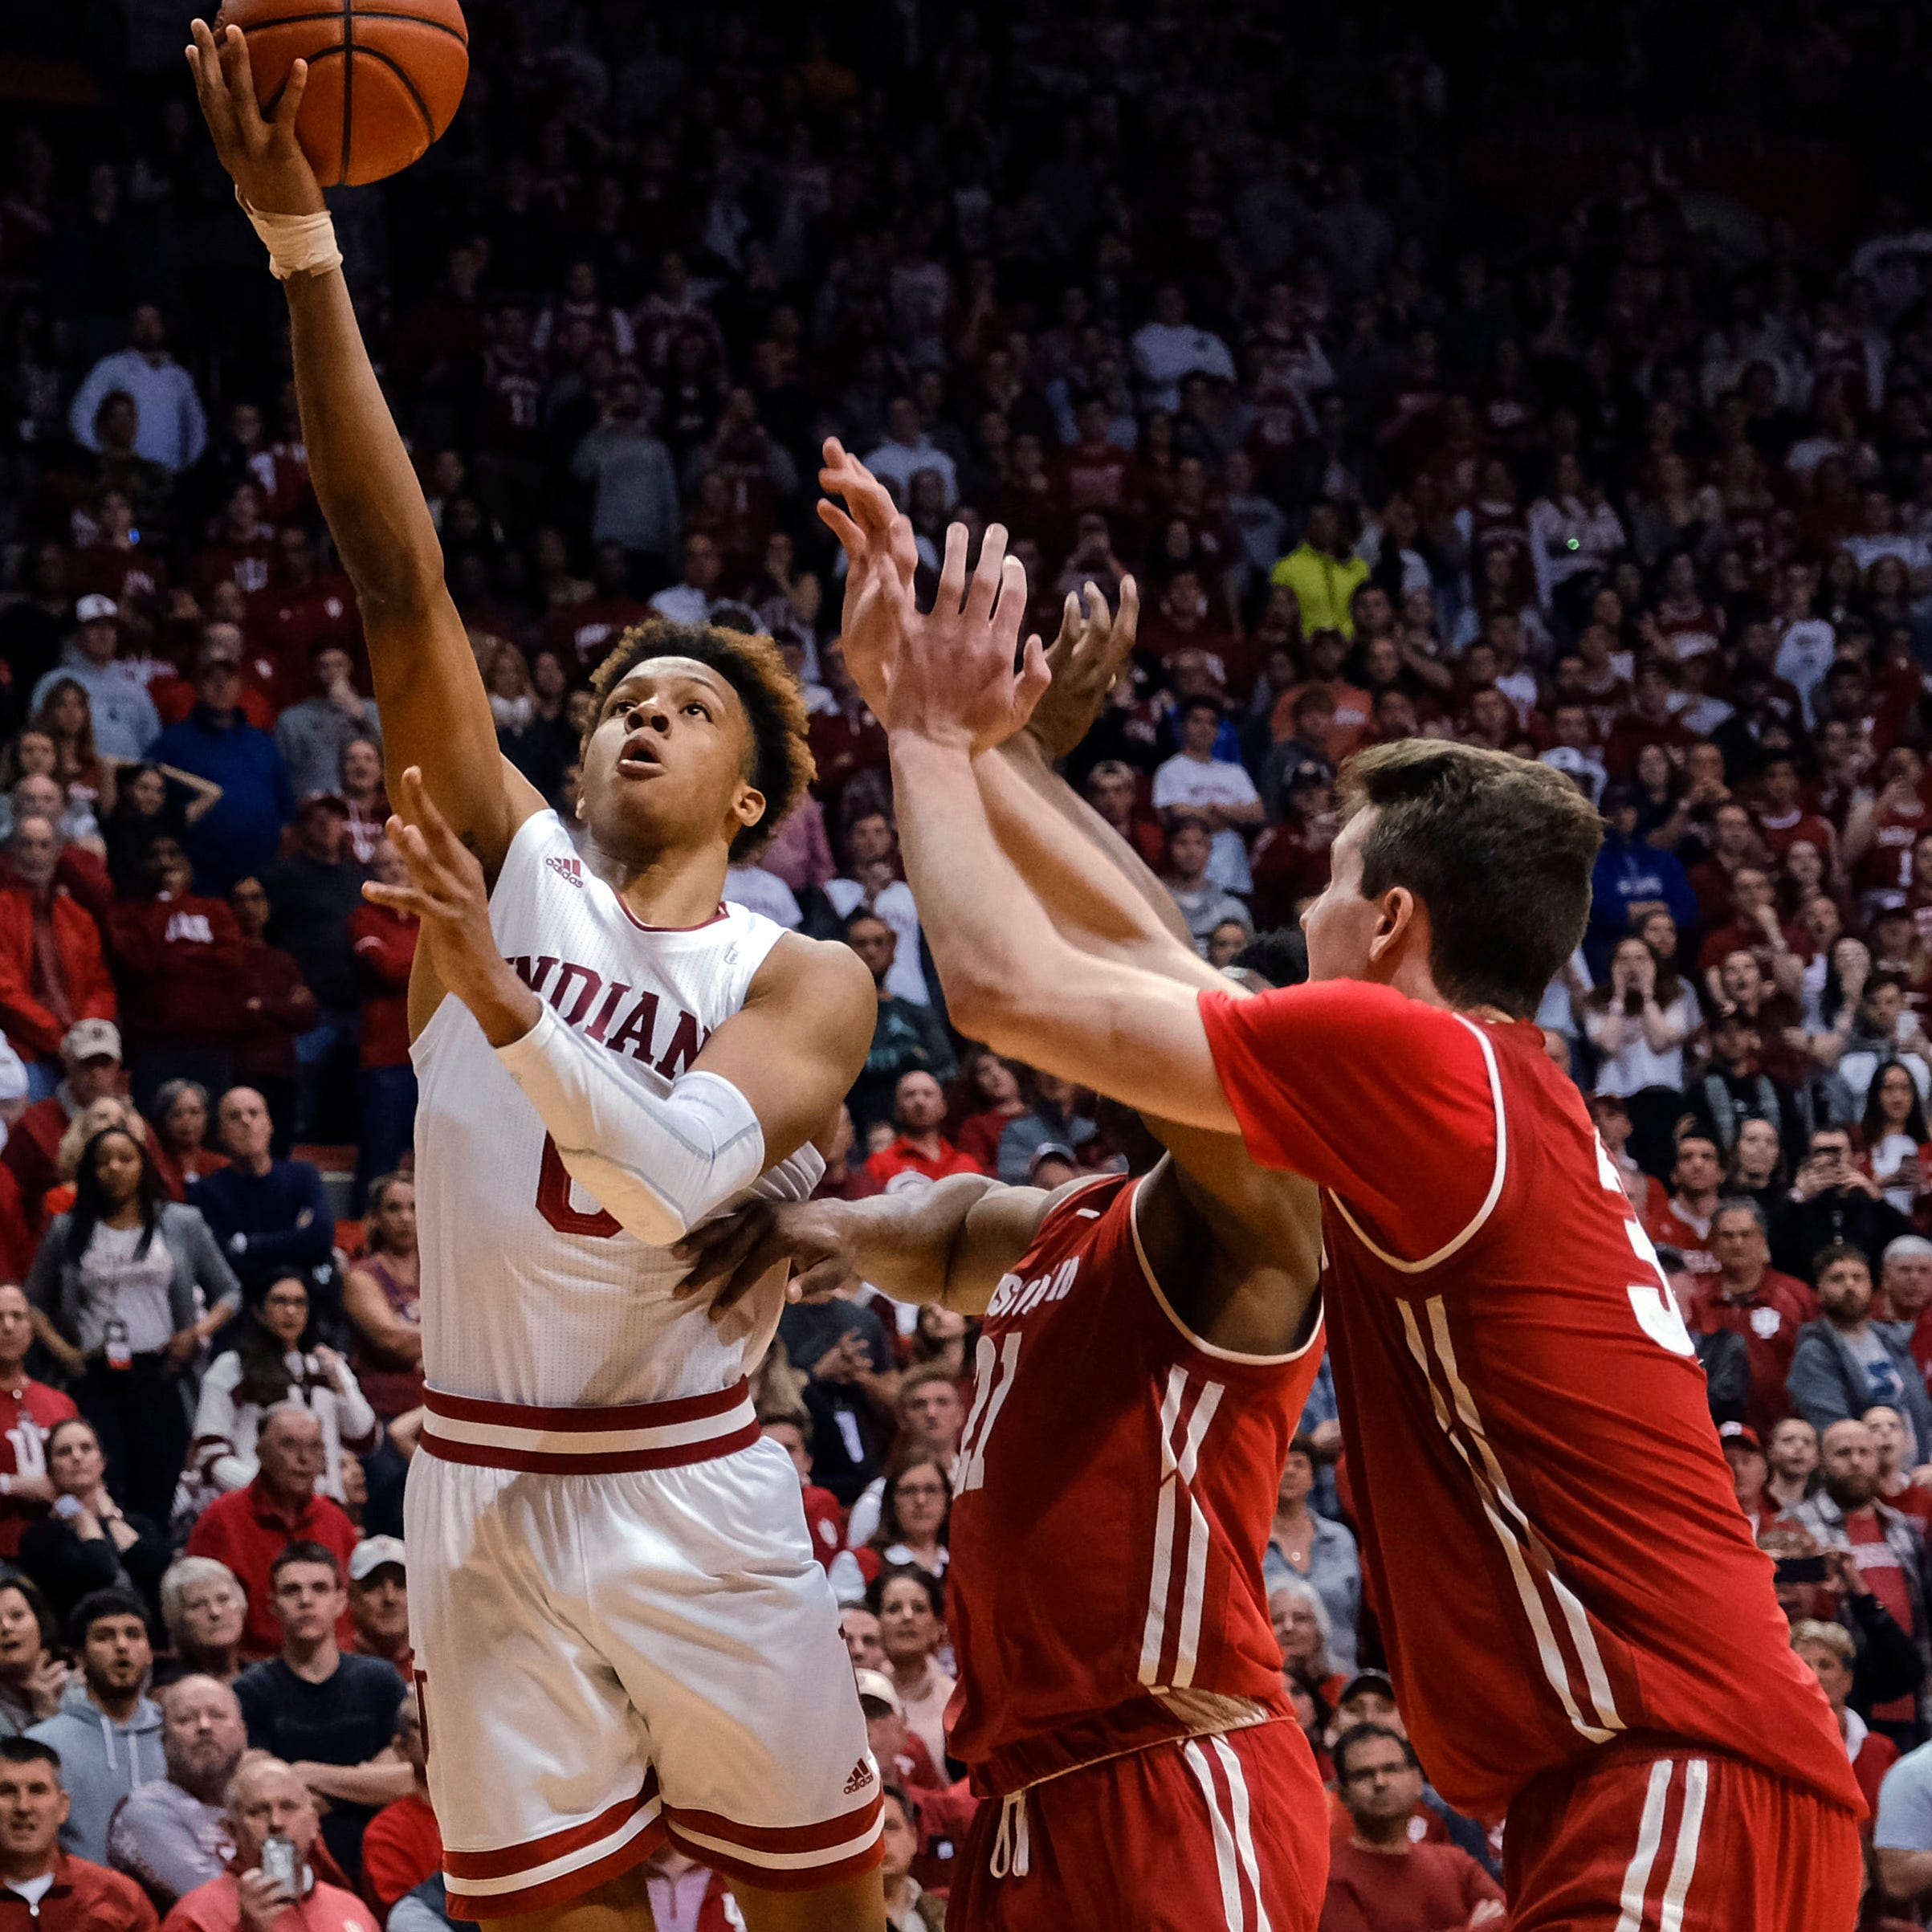 Indiana 75, Wisconsin 73: Hoosiers outlast Badgers in double overtime